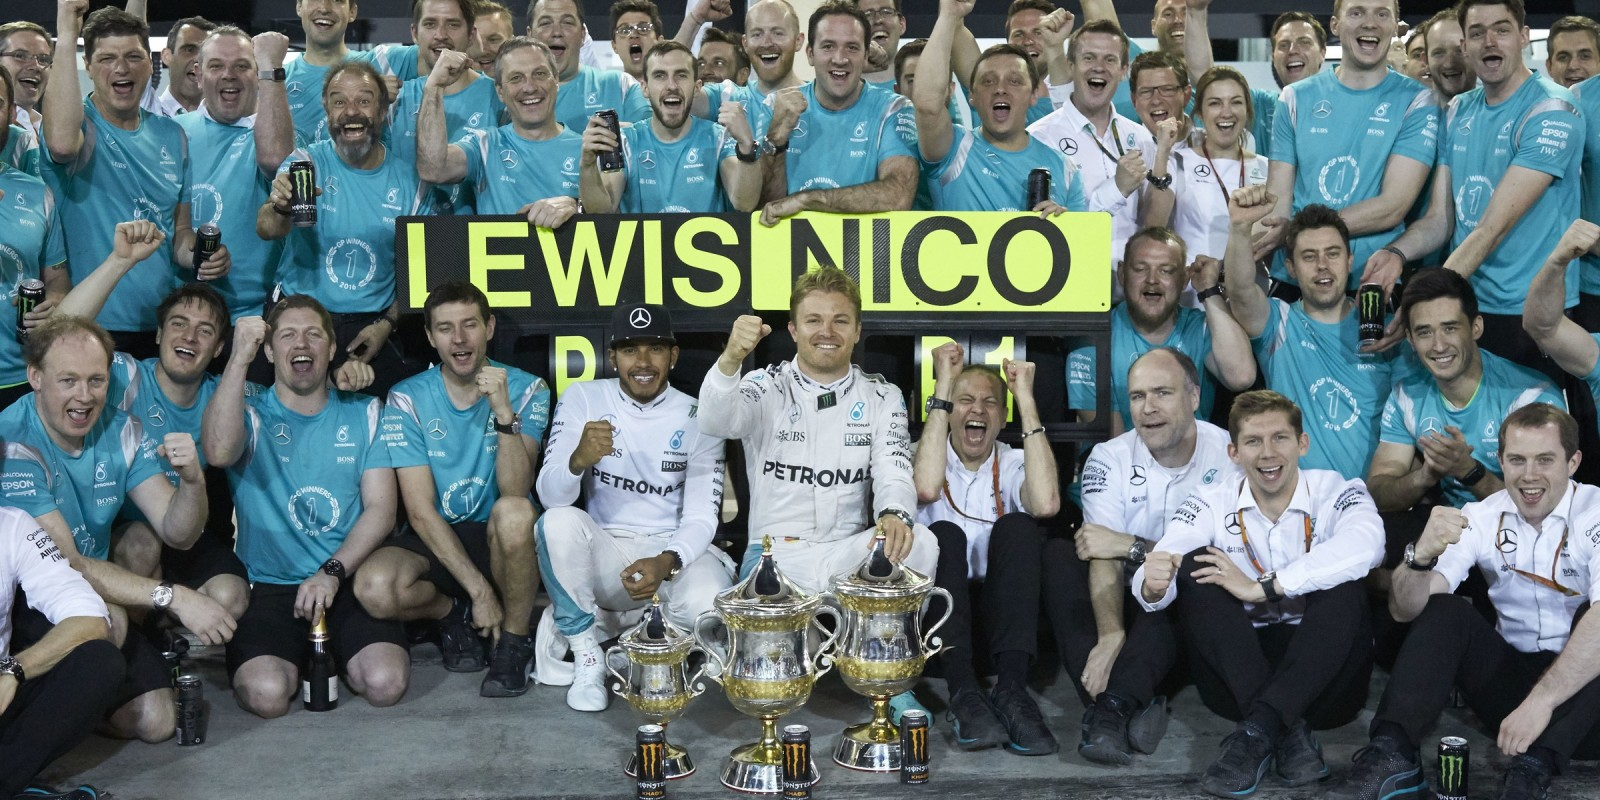 Sunday images of Lewis Hamilton and Nico Rosberg from round two of the 2016 Formula One World Championship